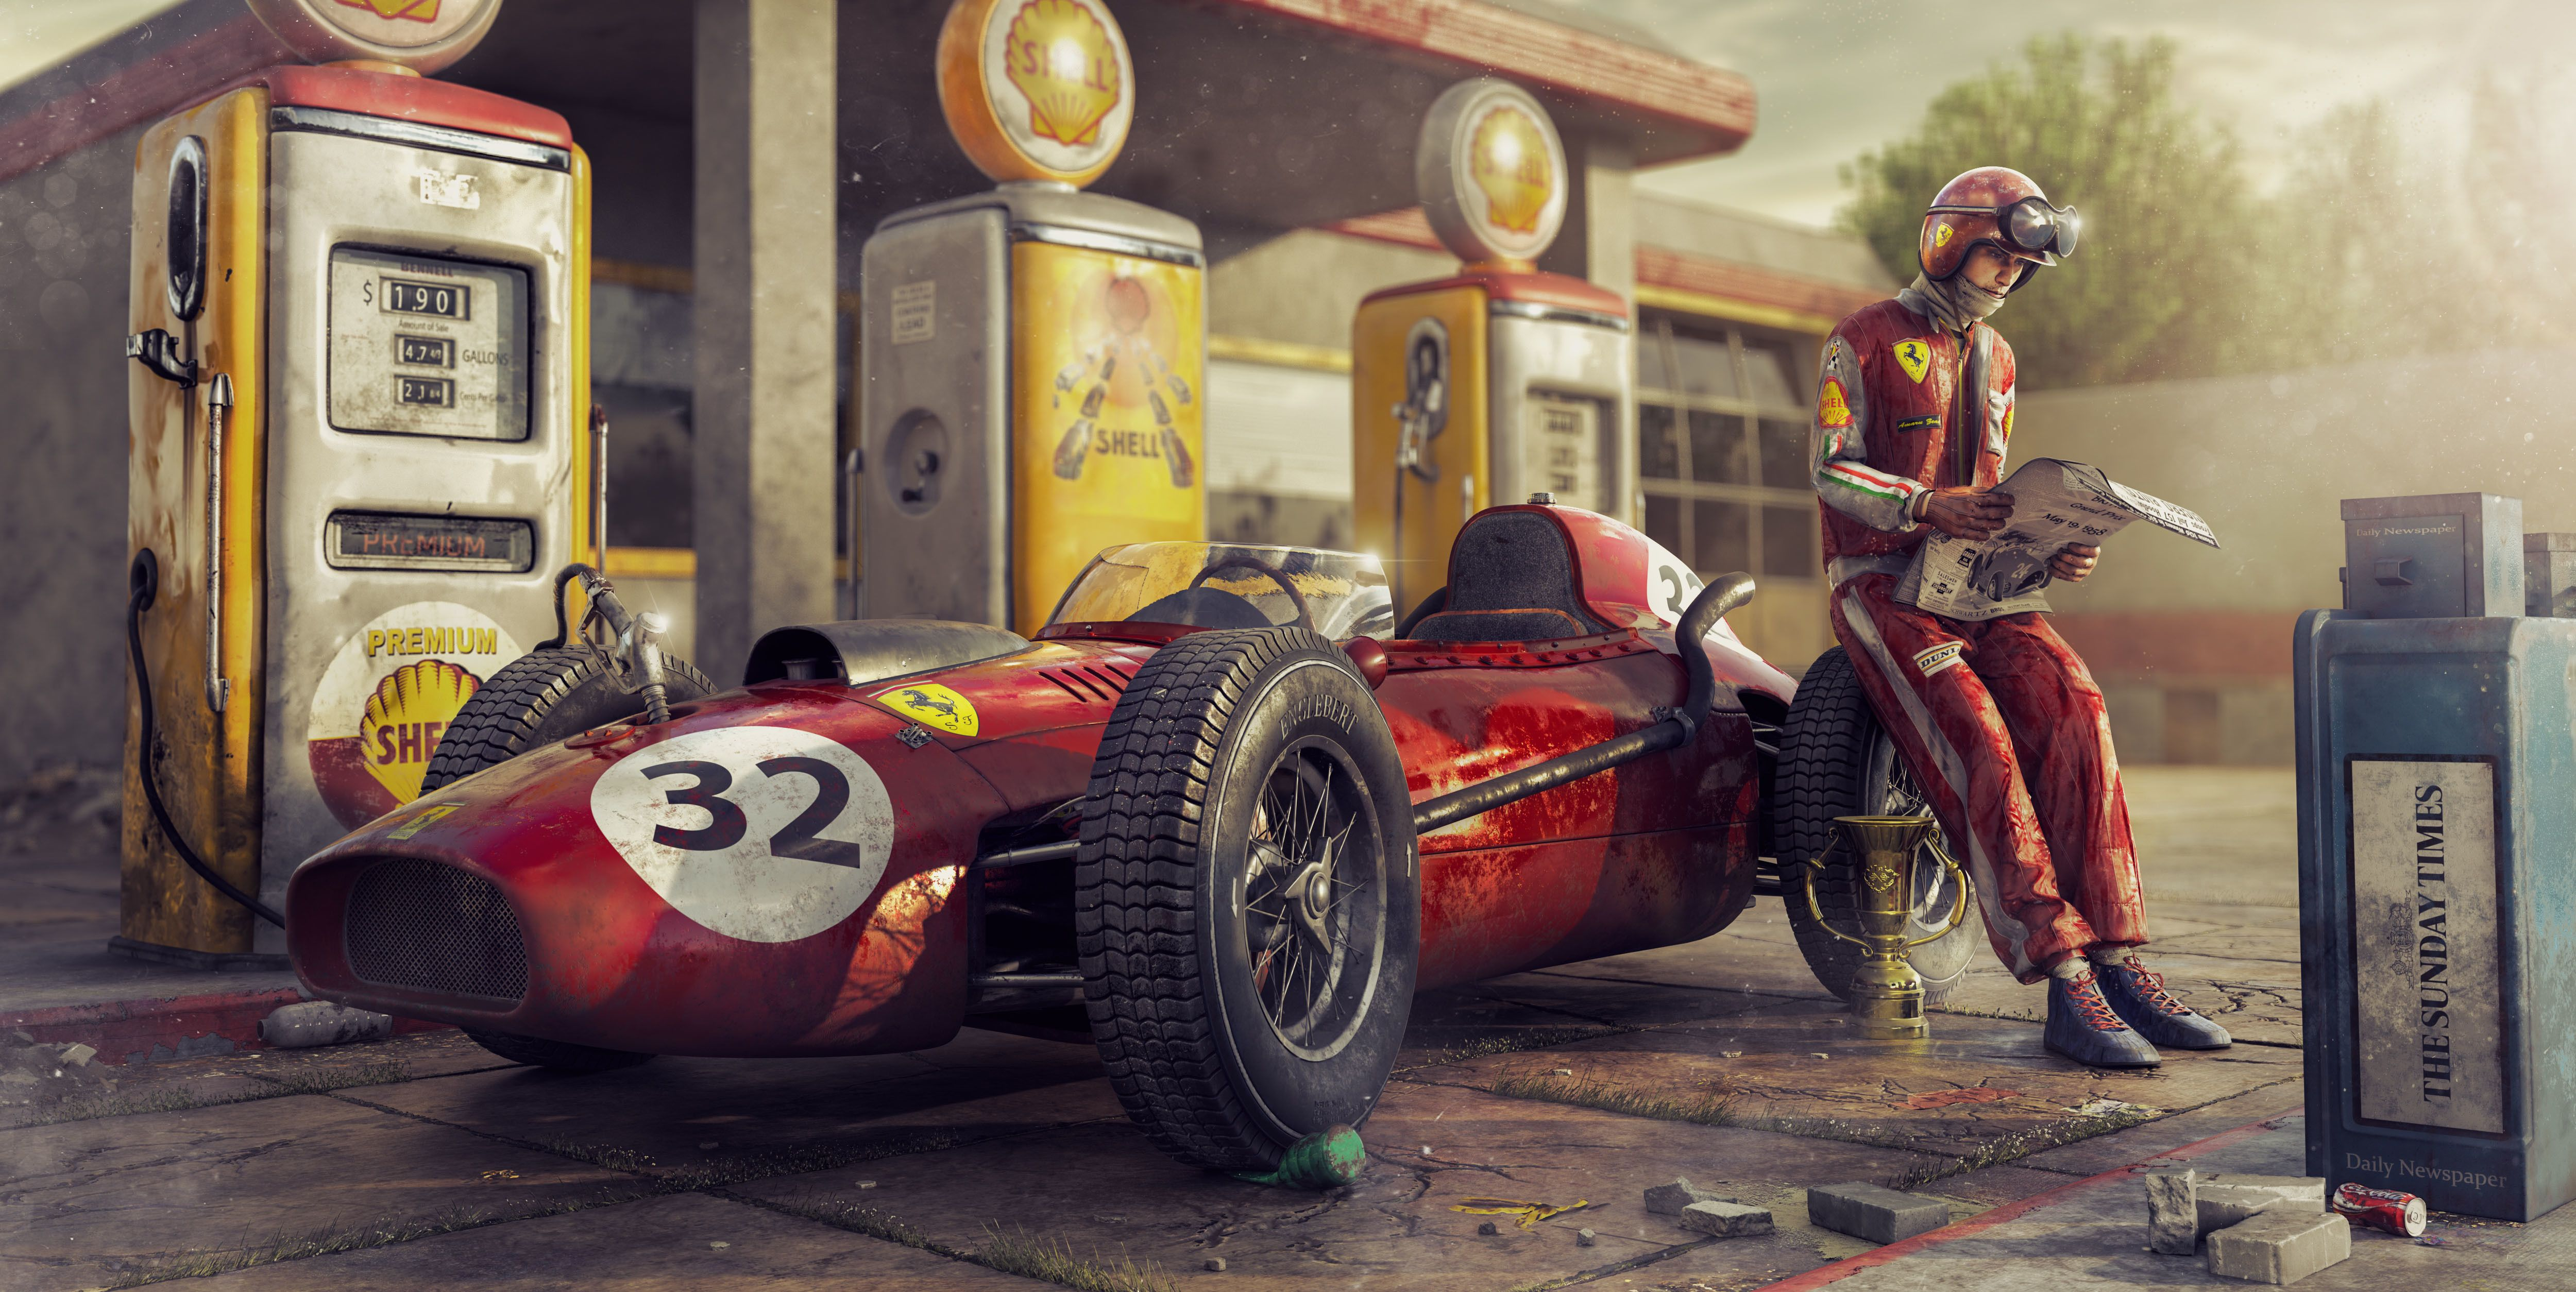 Going Home After Work By Amaru Zeas Transport 3d Cgsociety Racing Red Car Car Wallpapers